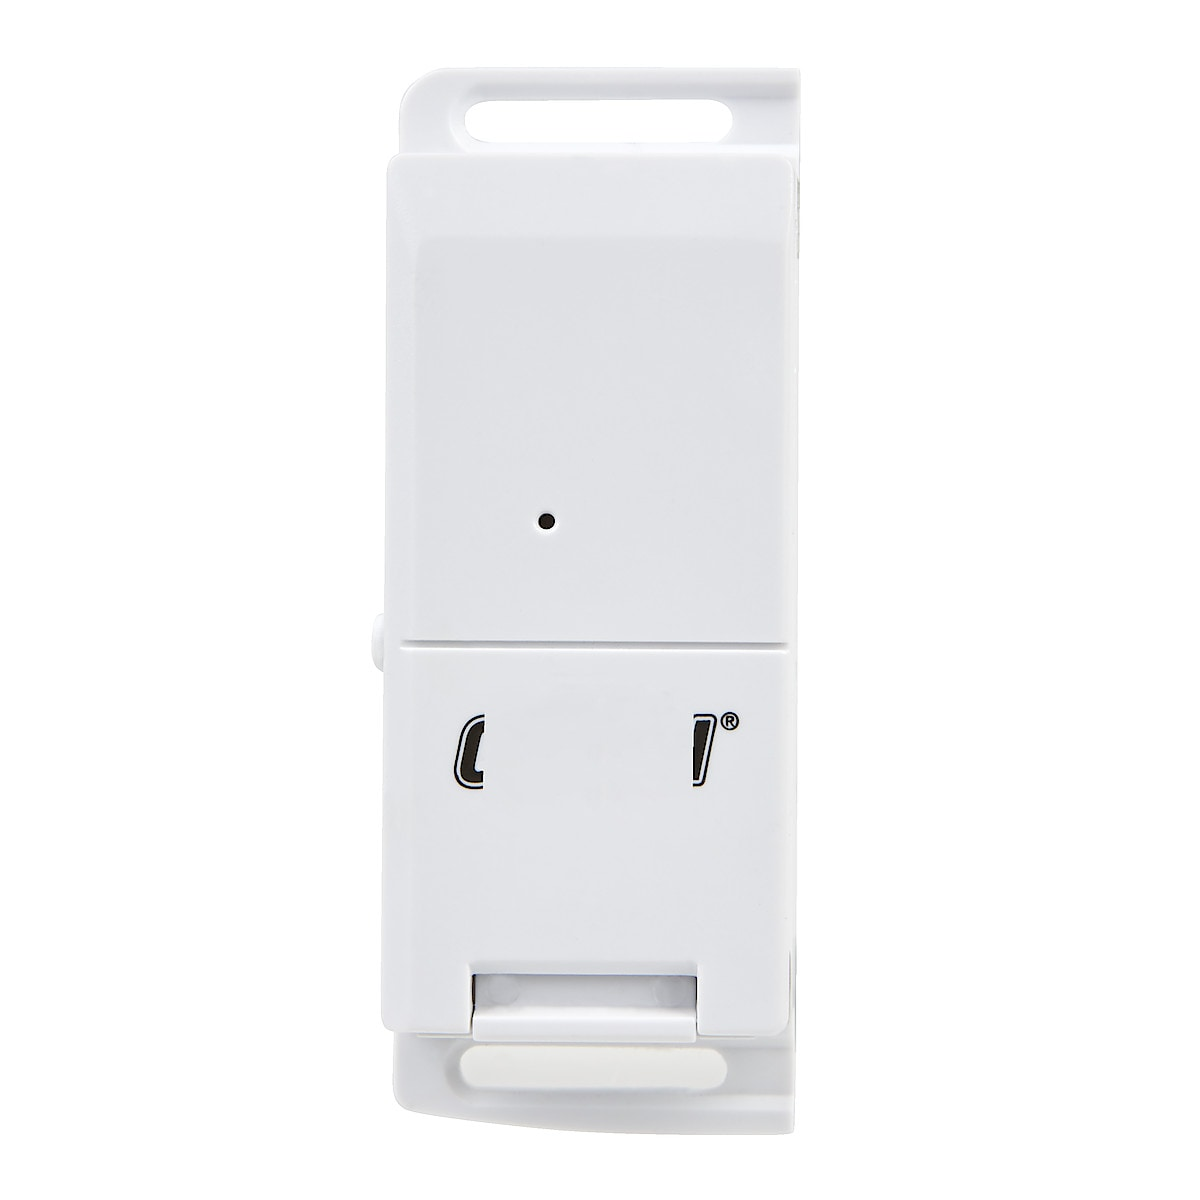 Cotech Smart Home Magnetic Contact Switch